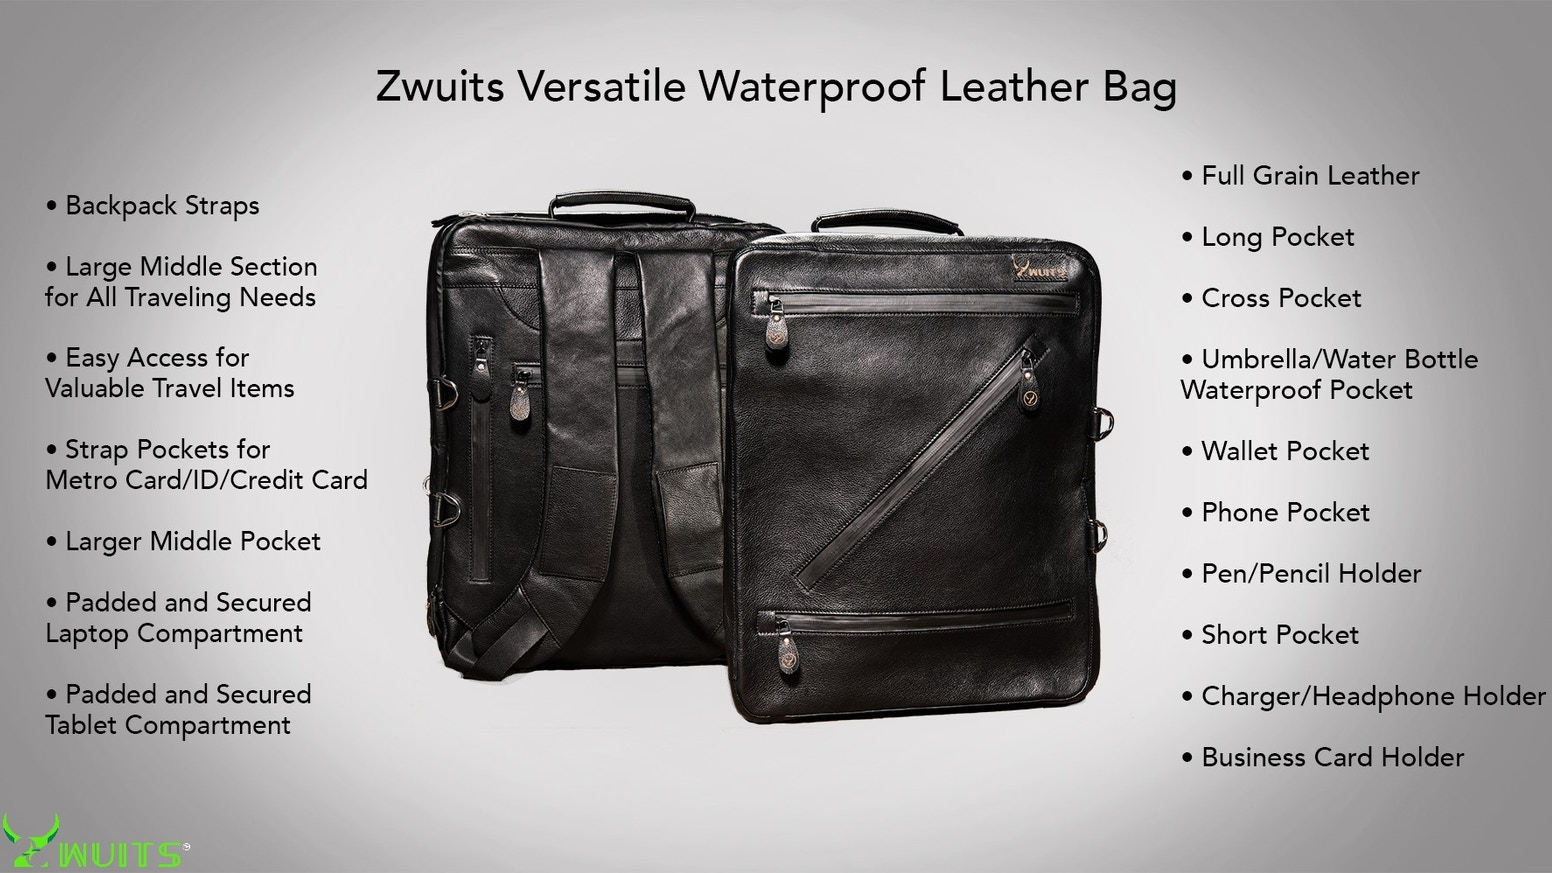 Hazardous-chemical Free Versatile Leather Bag that can be Carried as a Messenger, Briefcase, and Backpack.